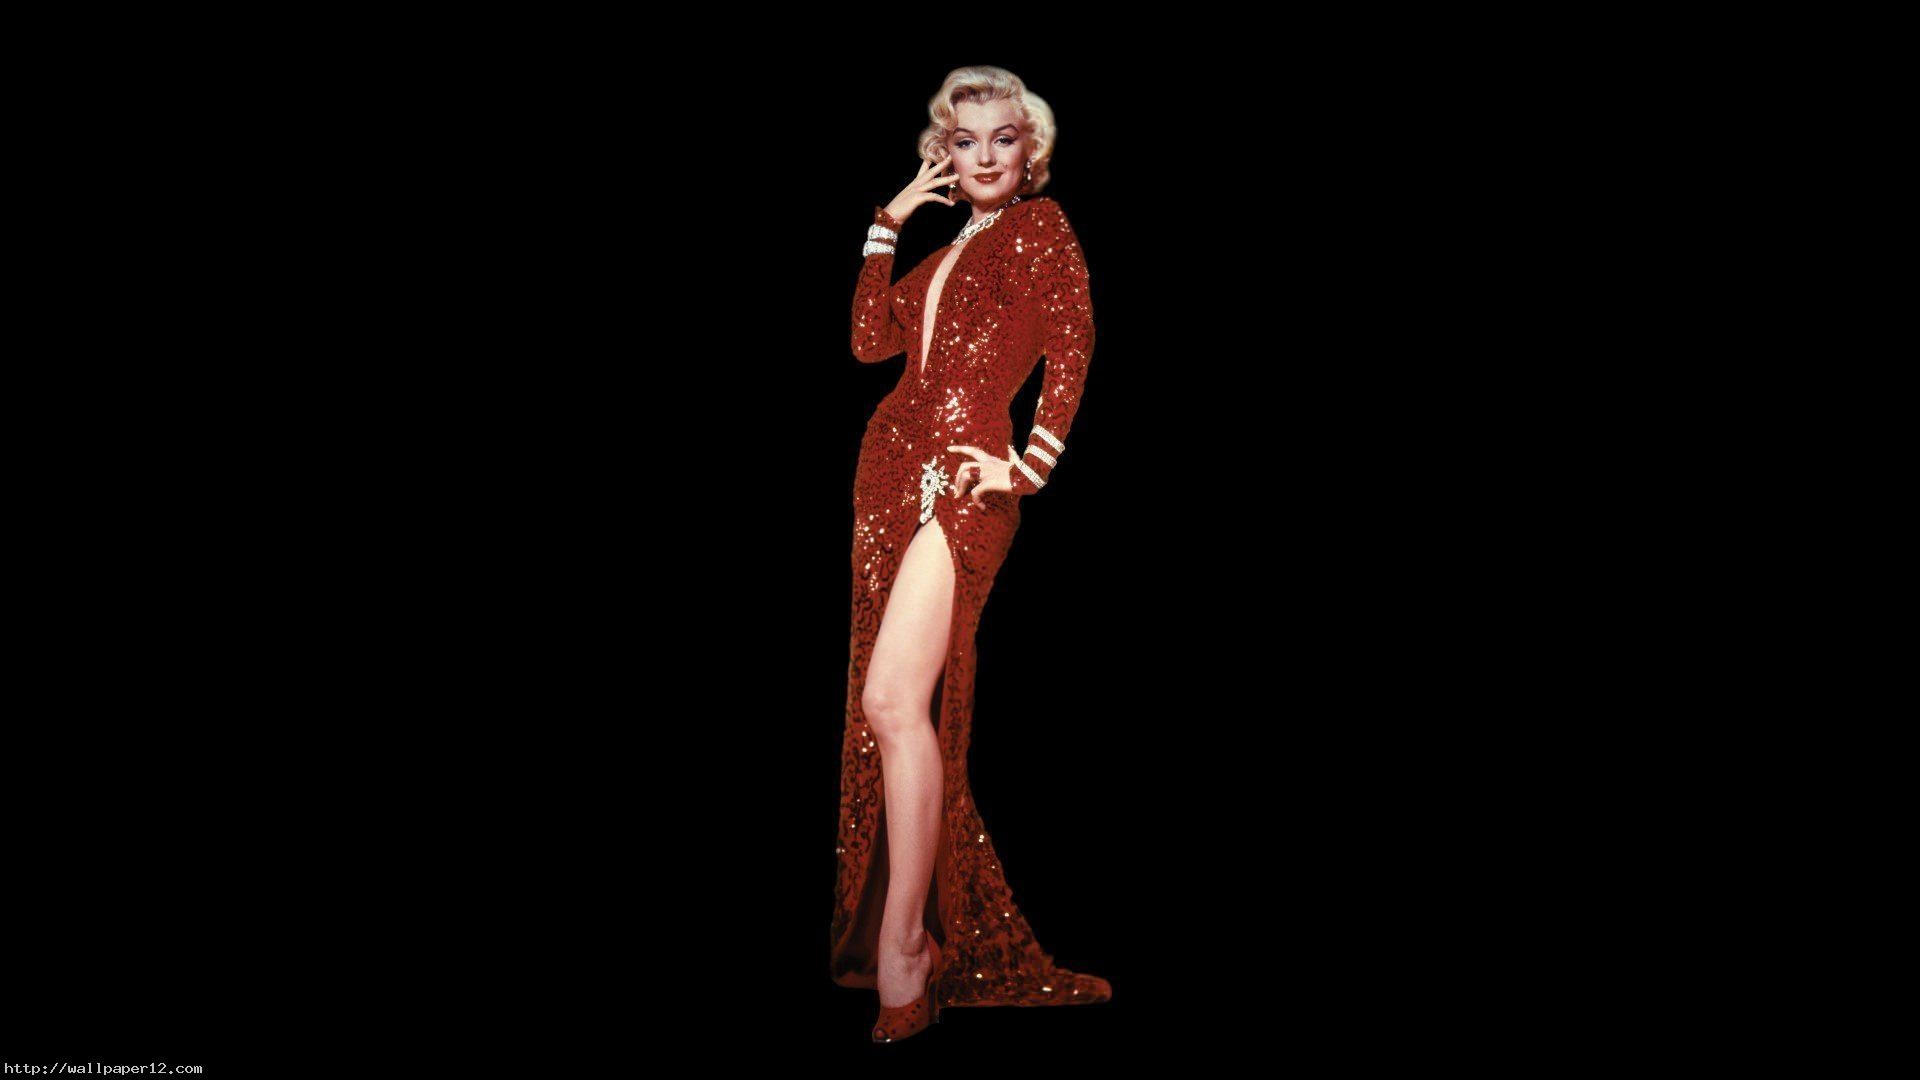 Hd Weed Wallpapers For Android Marilyn Monroe Raiders Wallpaper 183 ①